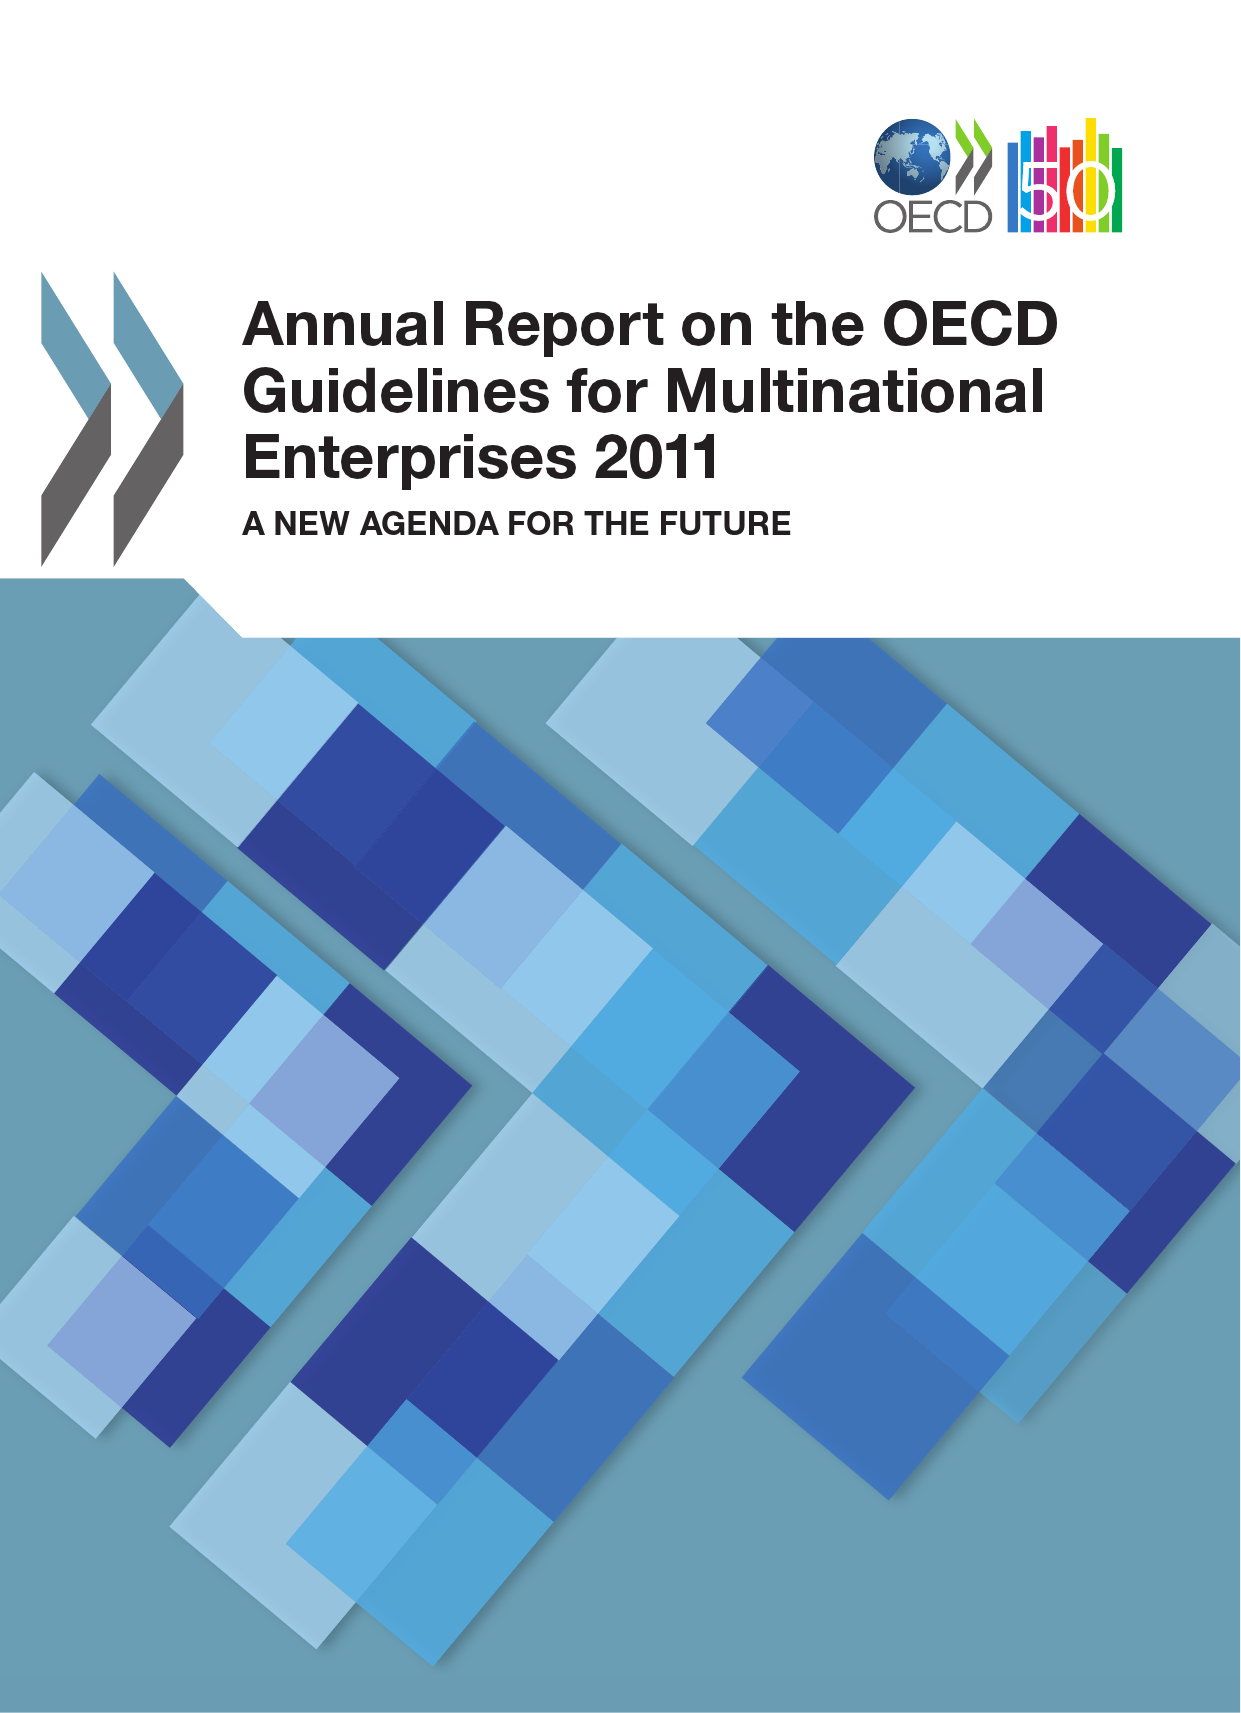 Annual Report on the OECD Guidelines for Multinational Enterprises 2011